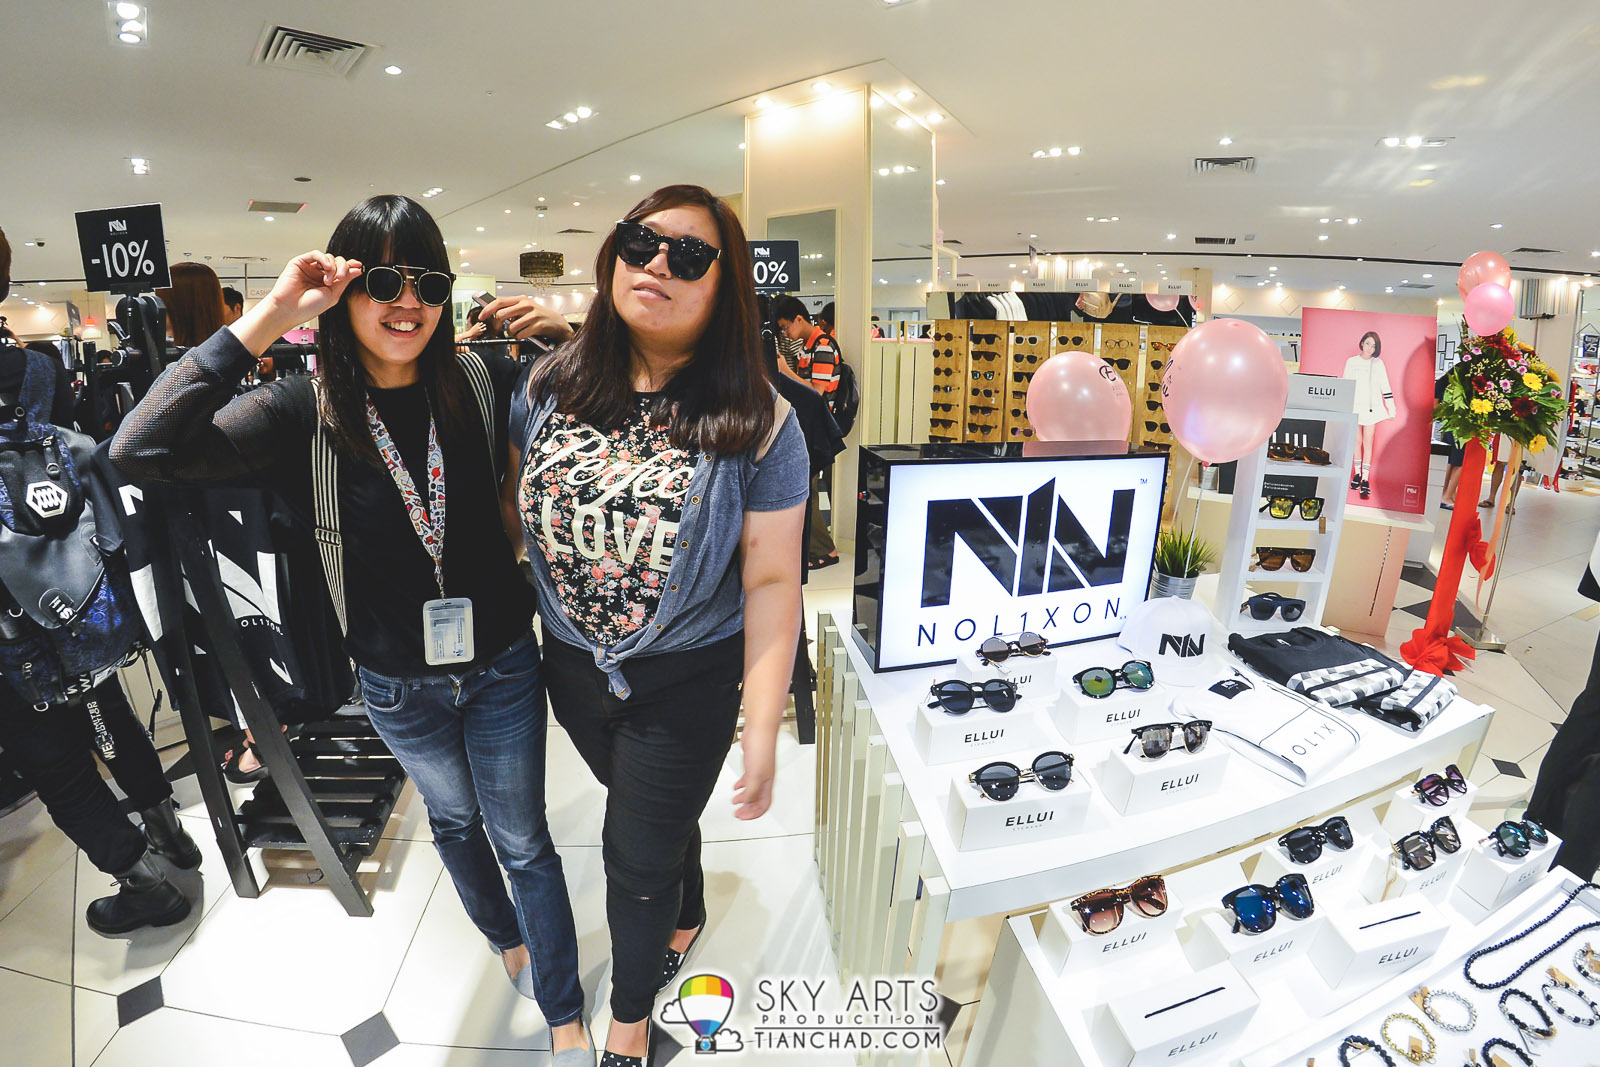 ELLUI Eyewear together with NOL1XON opened a pop-up store at ISEAN@KLCC